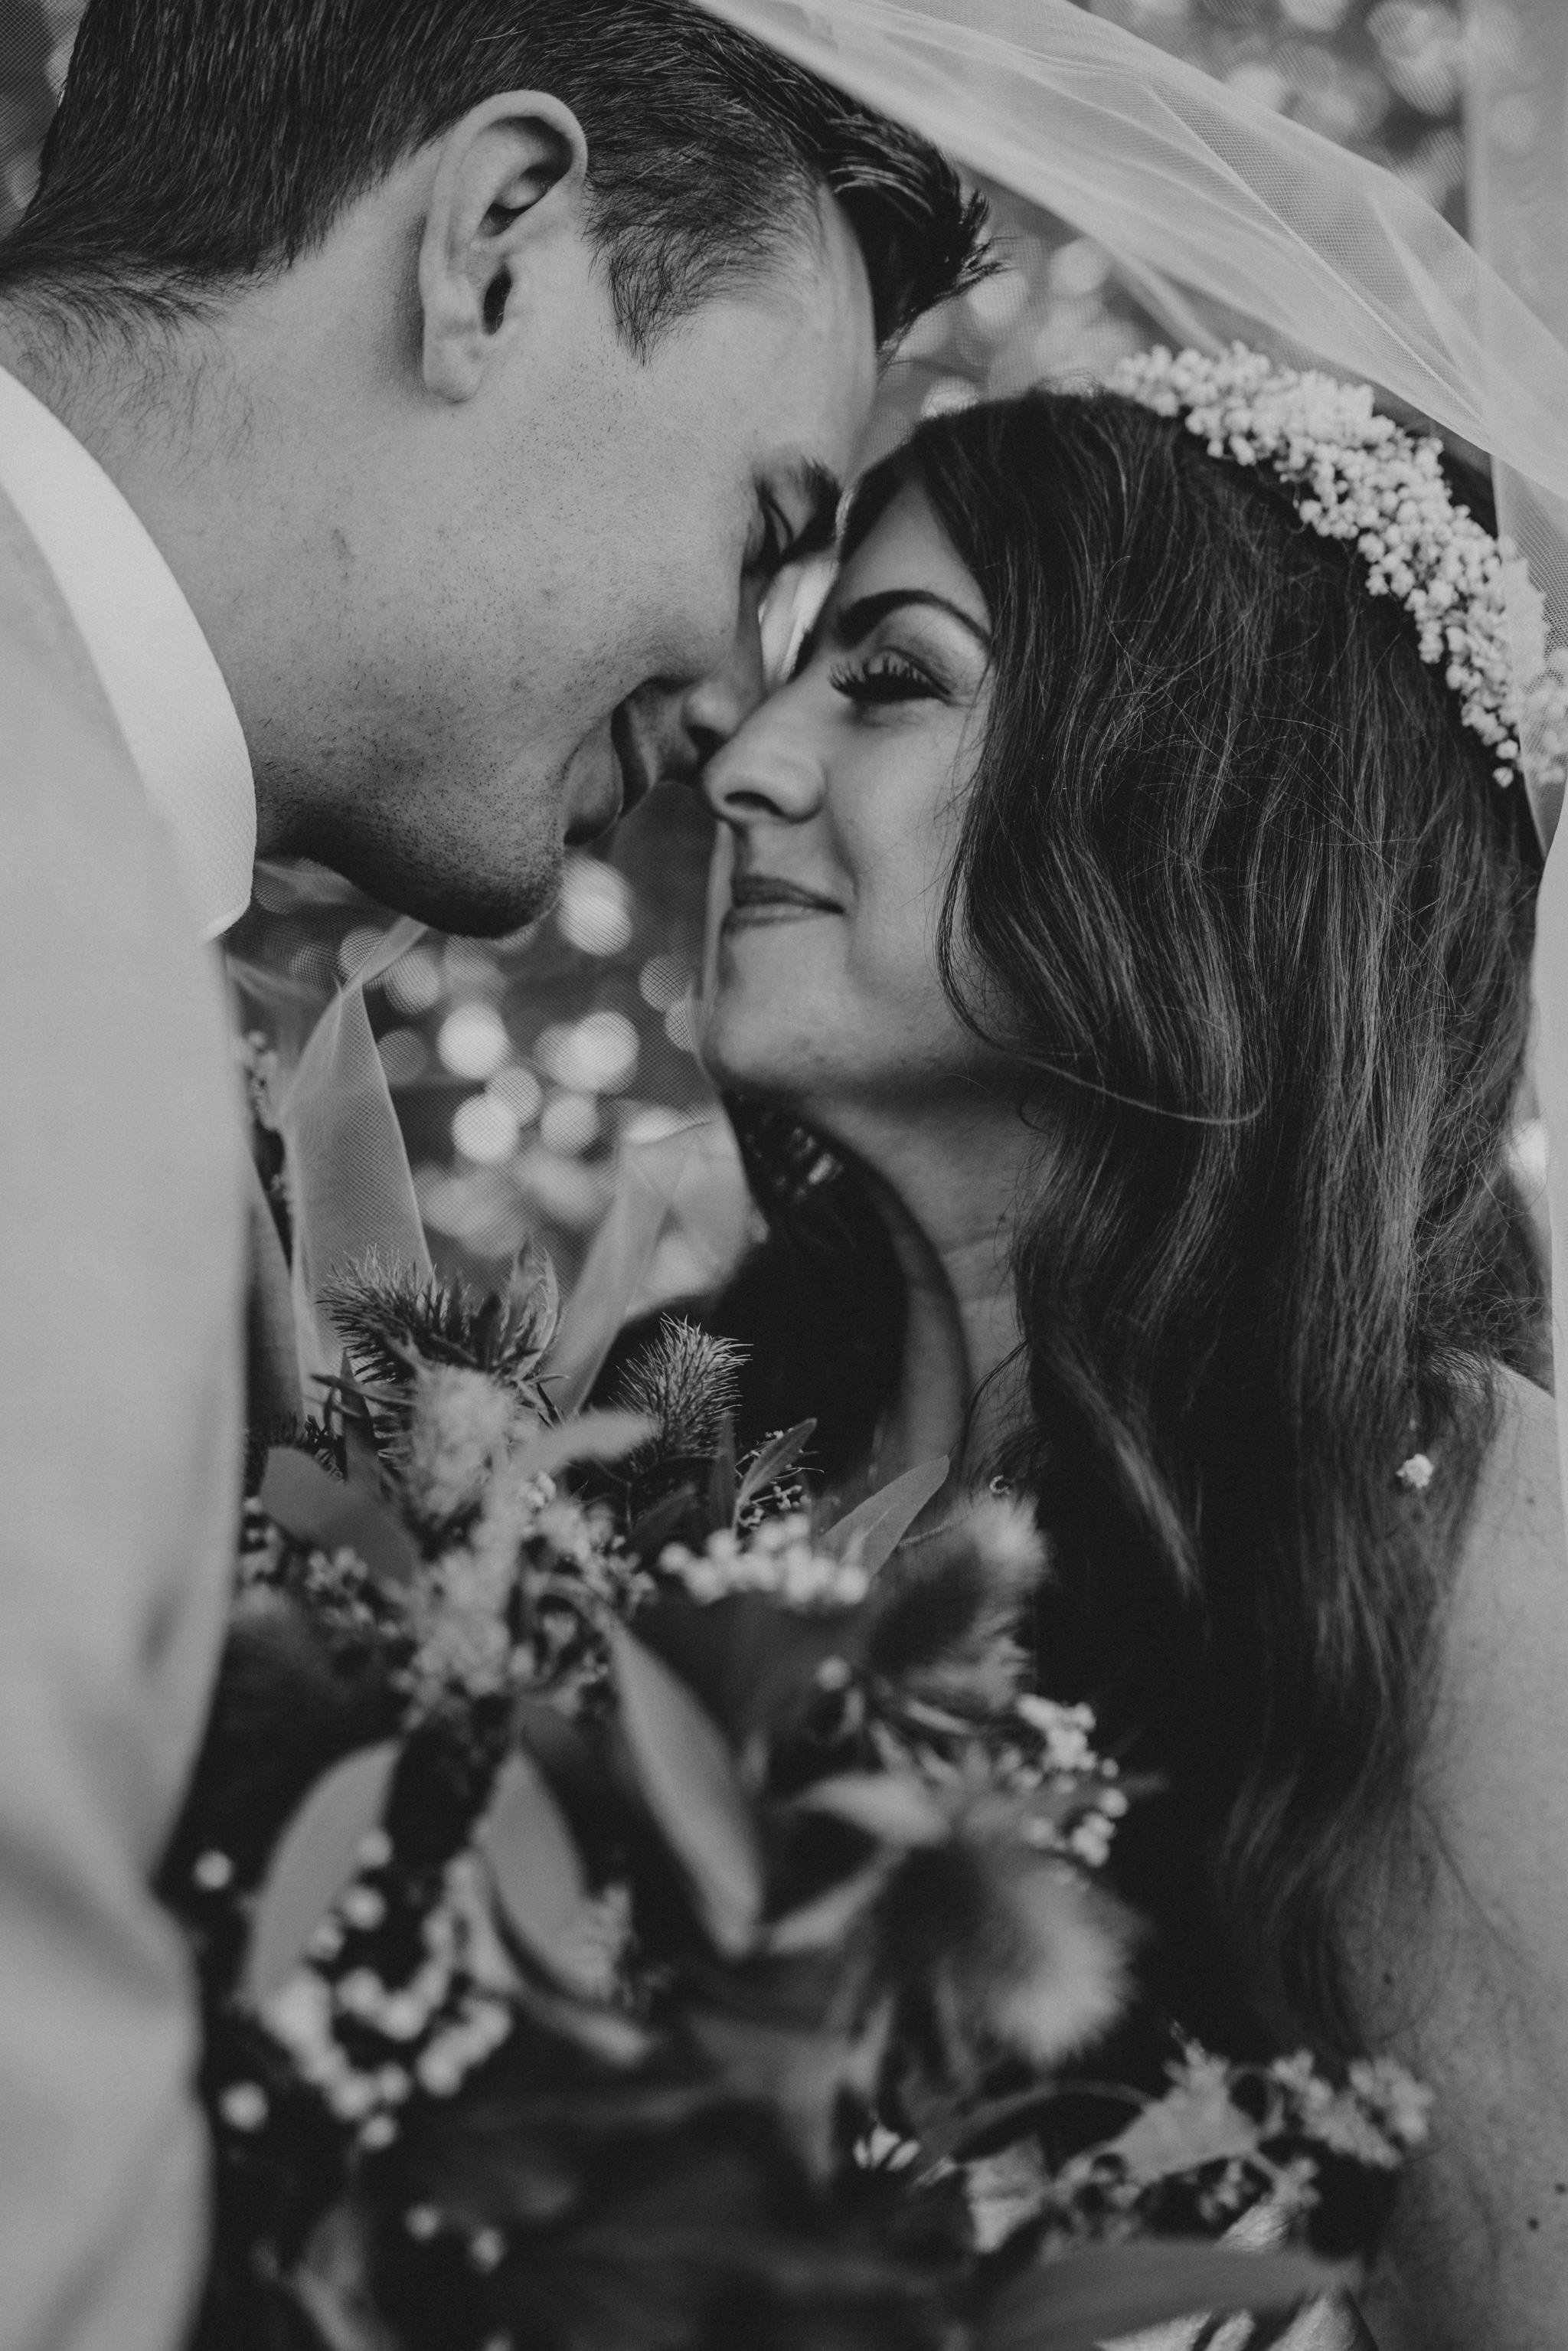 Sophie-Christian-Prested-Hall-DIY-Boho-Outdoor-Wedding-Grace-Elizabeth-Alternative-Wedding-Photographer-Colchester-Essex (78 of 113).jpg